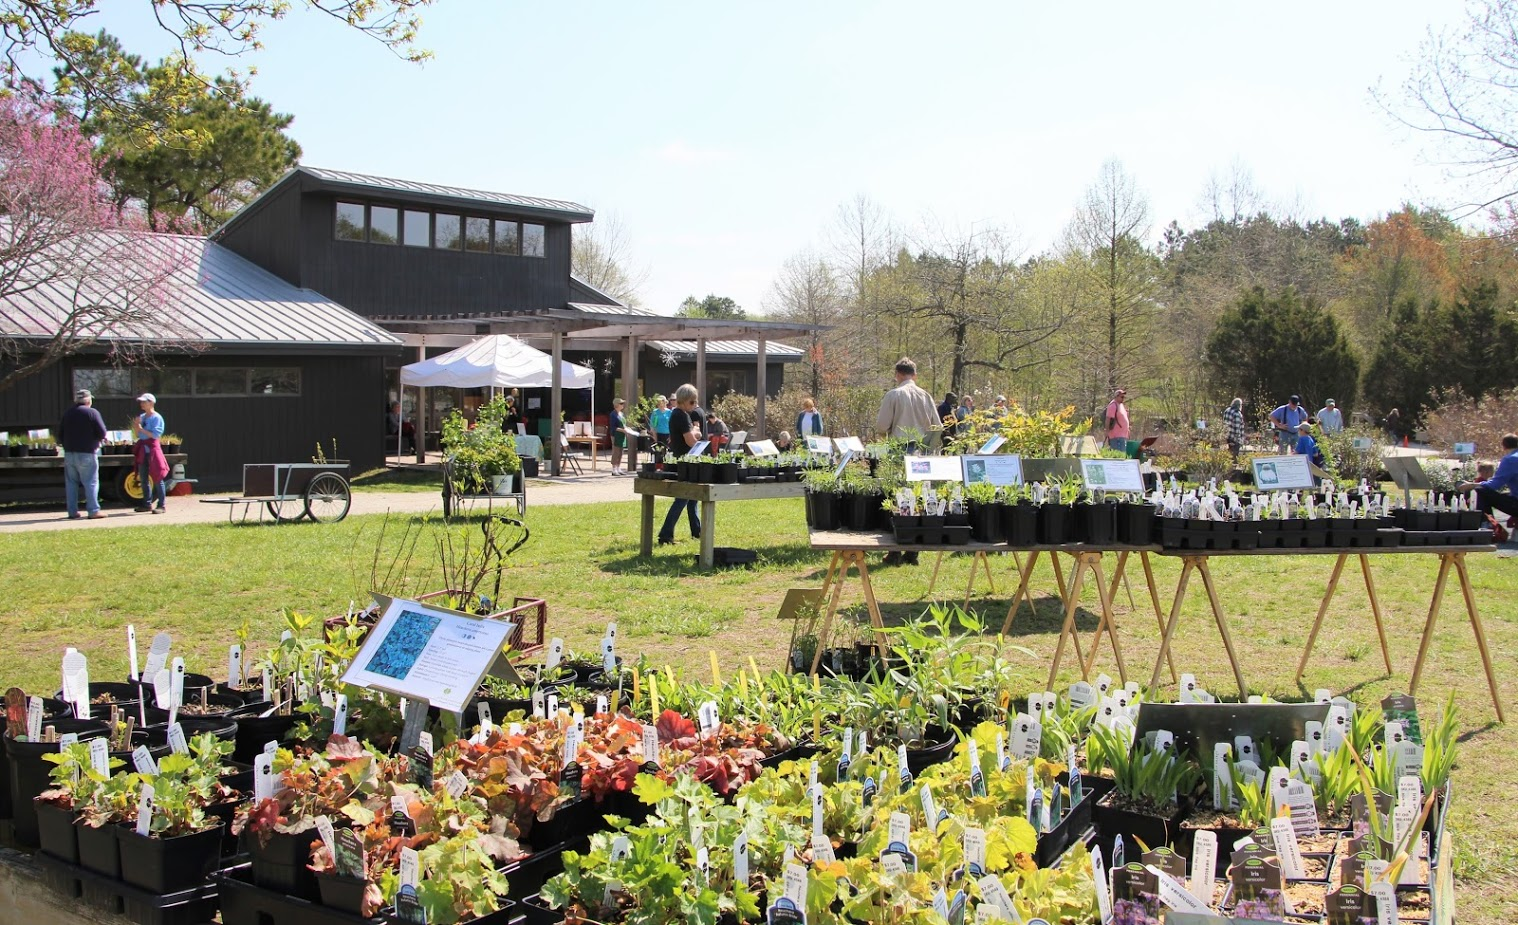 Adkins Arboretum Announces Spring Open House, Native Plant Sale